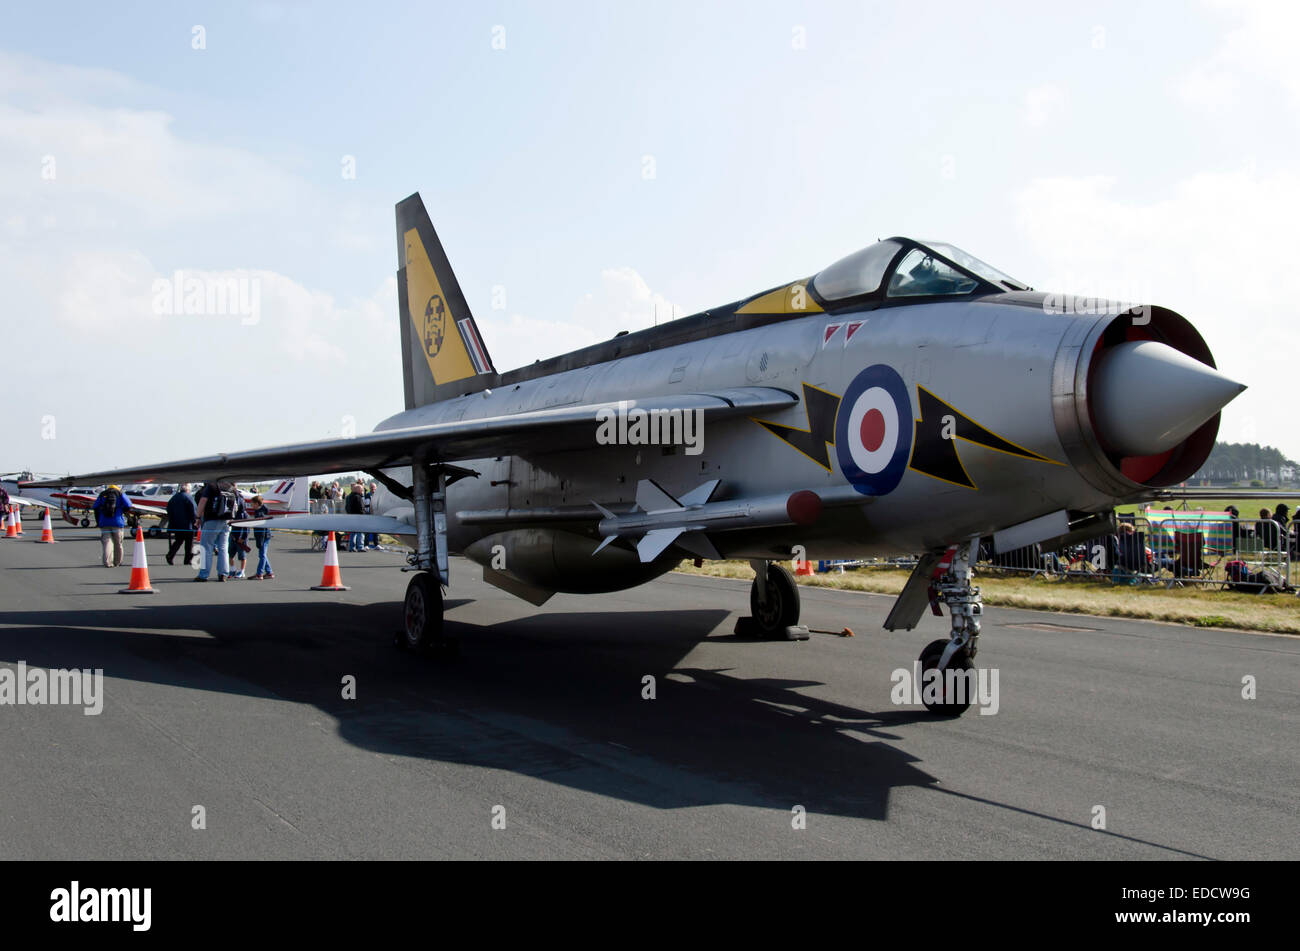 English Electric Lightning F3 fighter aircraft at Leuchars Air Show, Scotland, 2013. - Stock Image